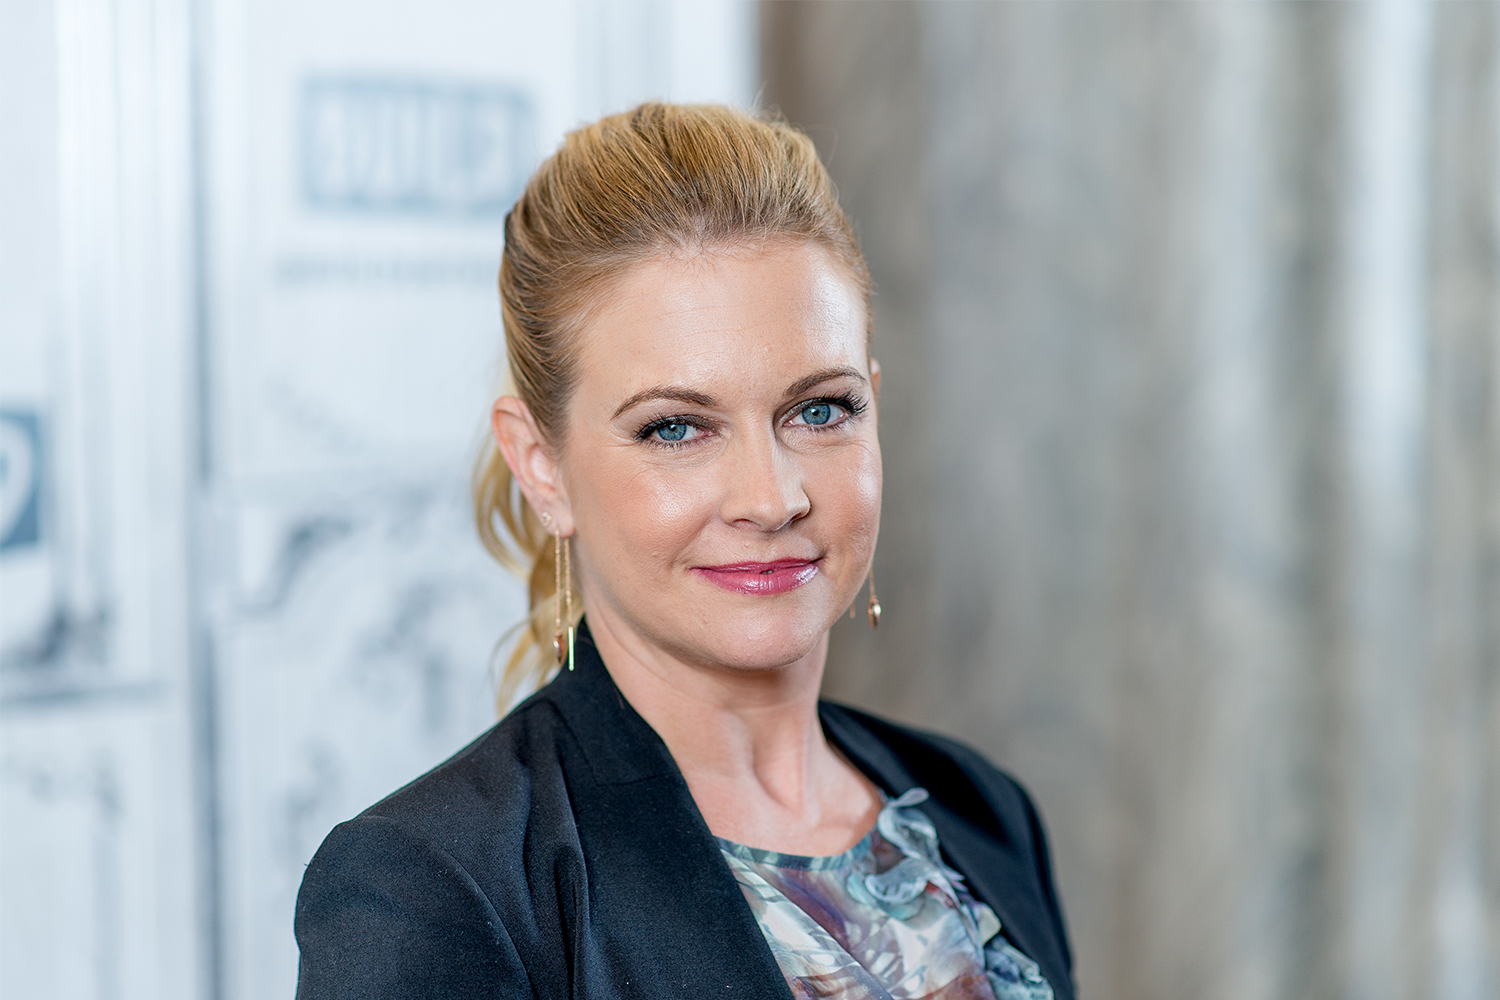 Melissa Joan Hart Says She Wouldnt Want To Touch A Sabrina